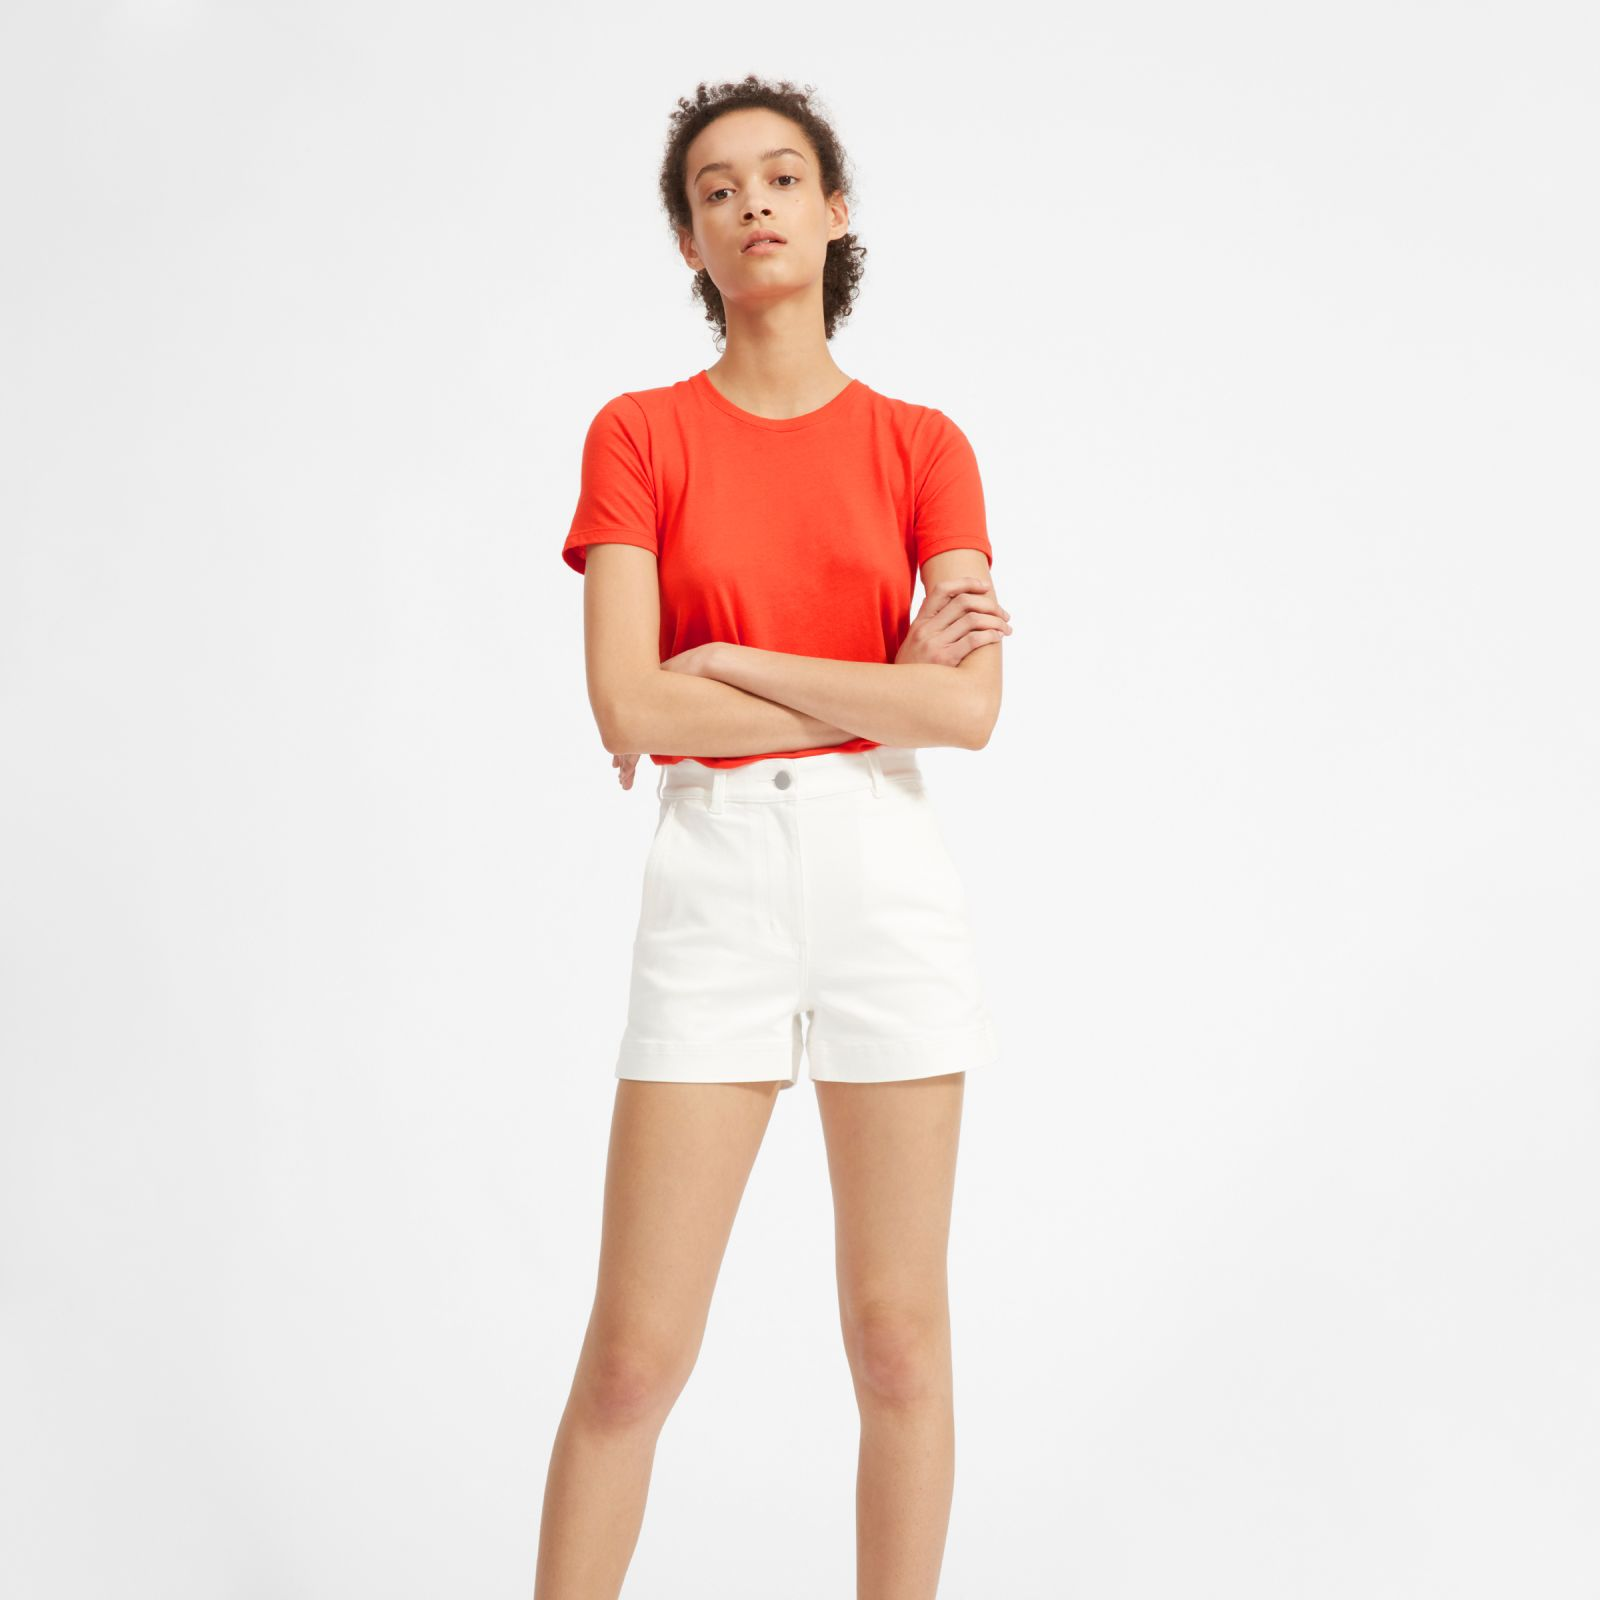 women's cotton crew t-shirt by everlane in poppy red, size m